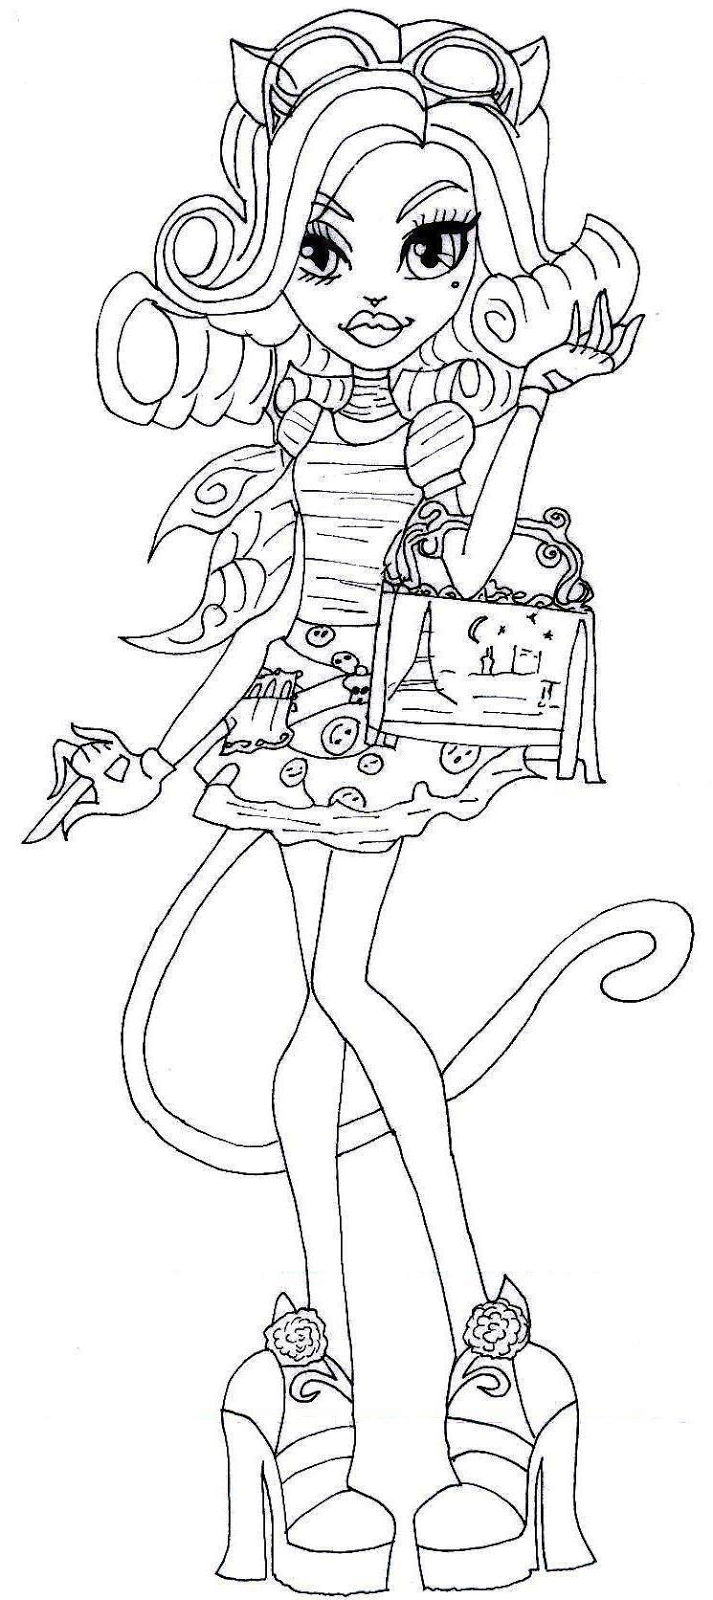 new monster high dolls 2014 coloring pages: Free Printable